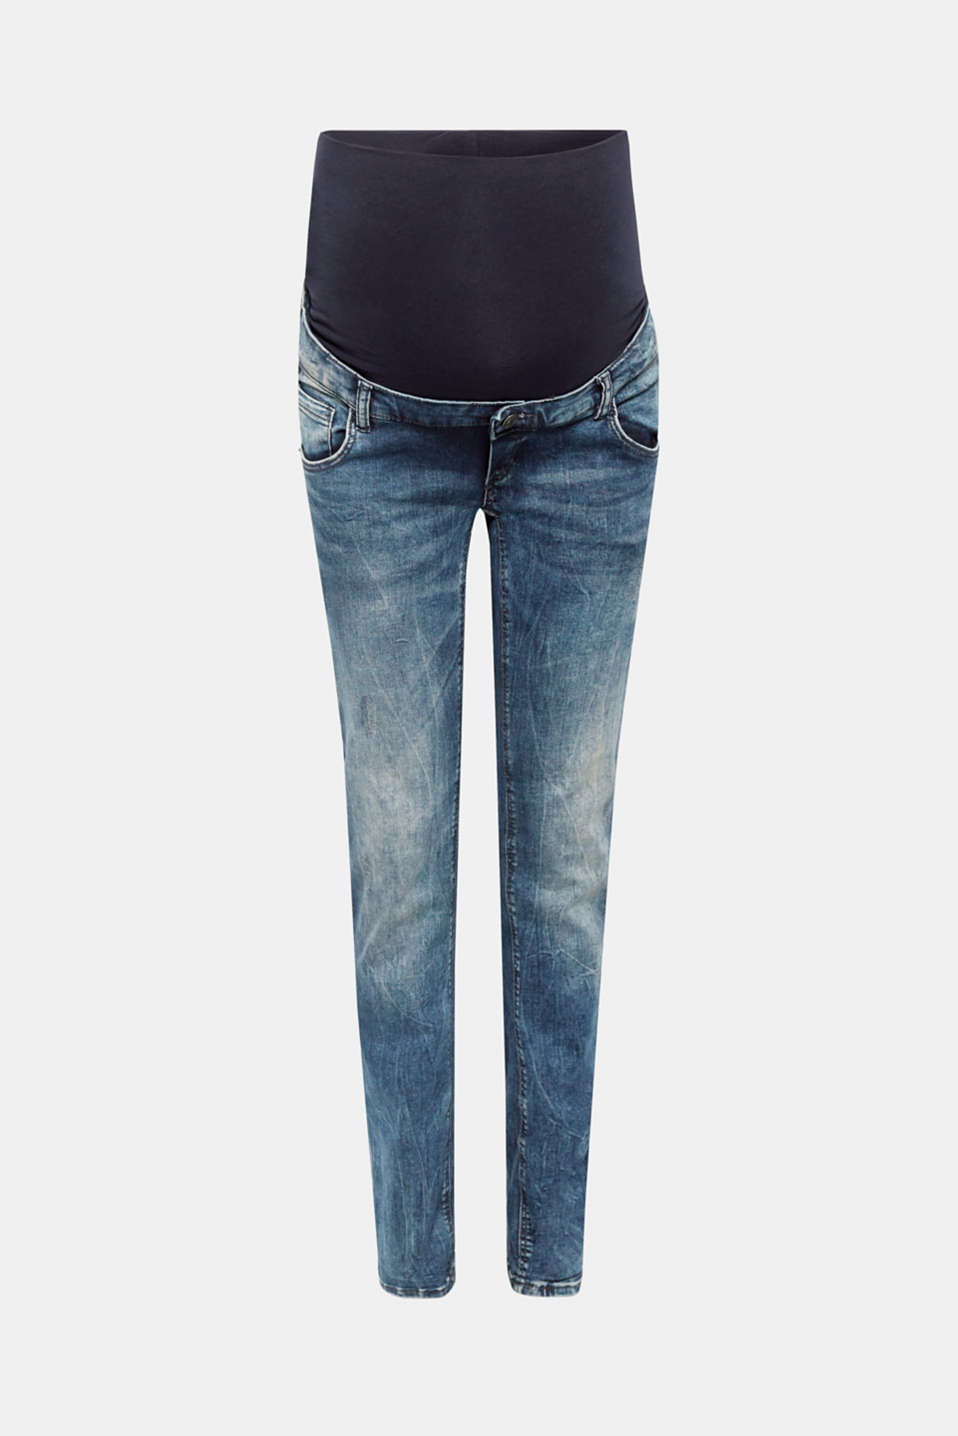 The straight, narrow legs and acid wash make these stretch jeans with a versatile over-bump waistband a fantastic fashion fave!